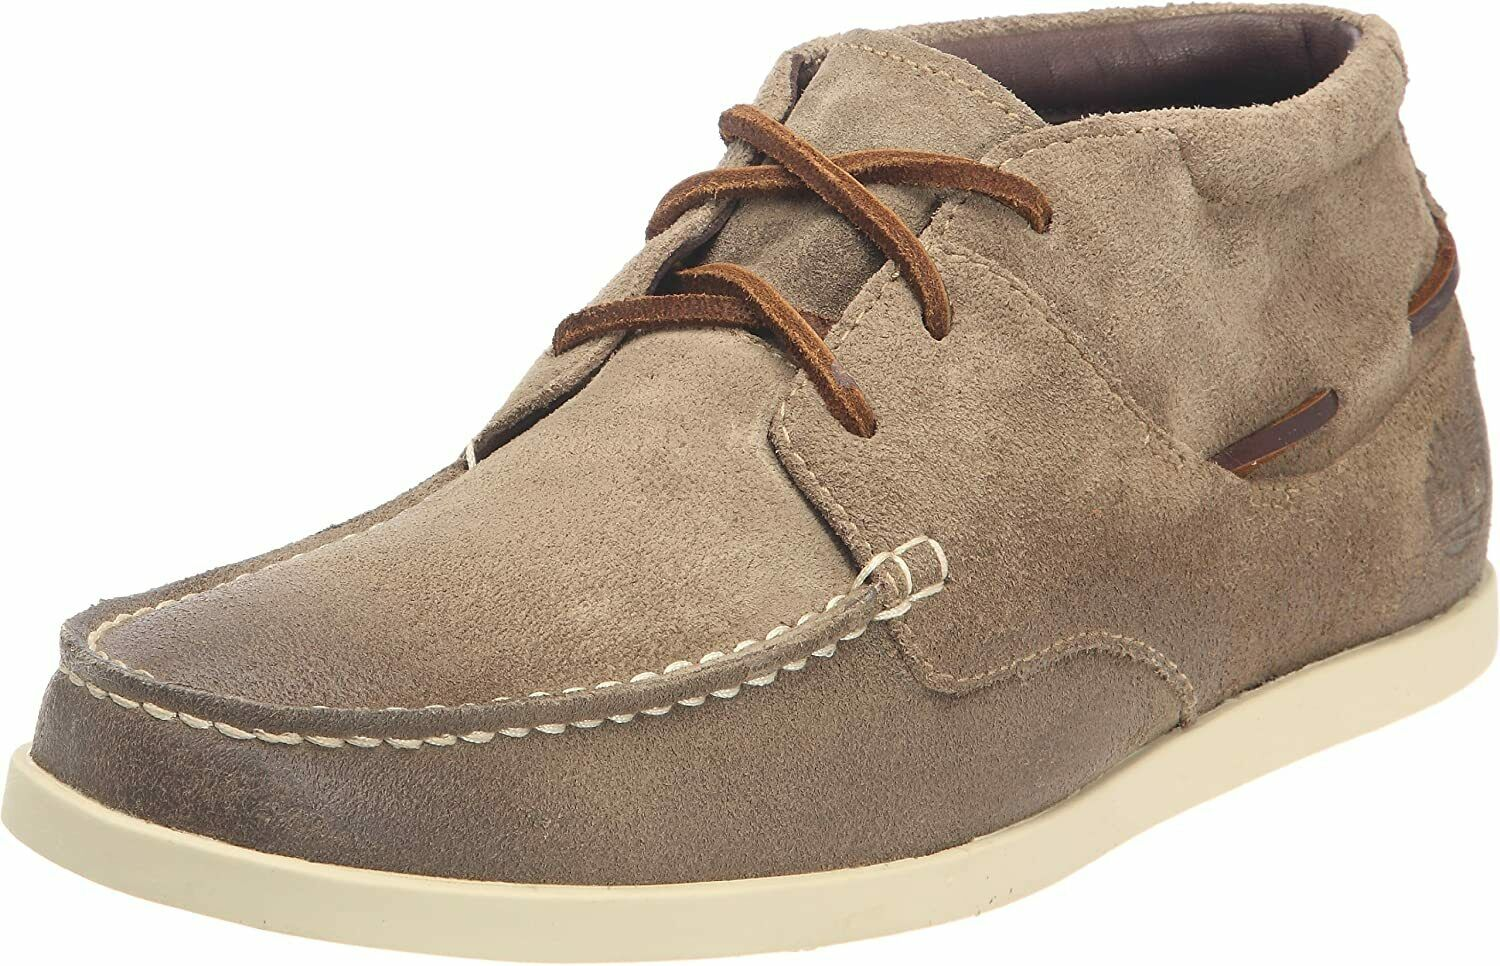 Mens Classic Casual Smart Timberland Chukka Taupe Leather Suede Shoes UK 11 M